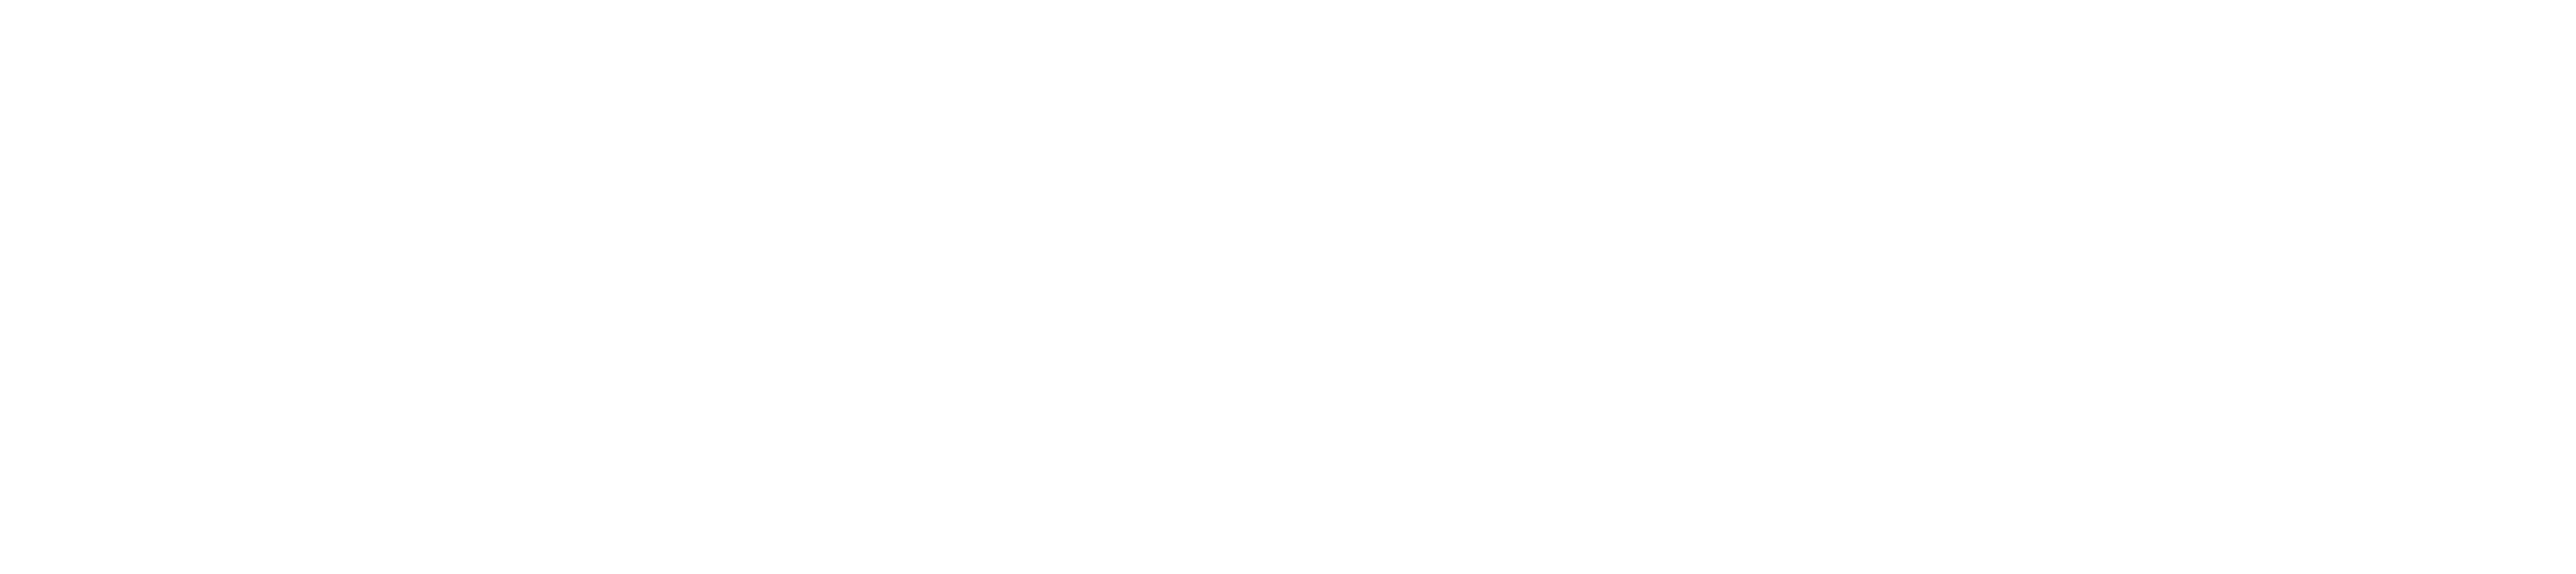 Logo for the College of Arts and Humanities at Fresno State